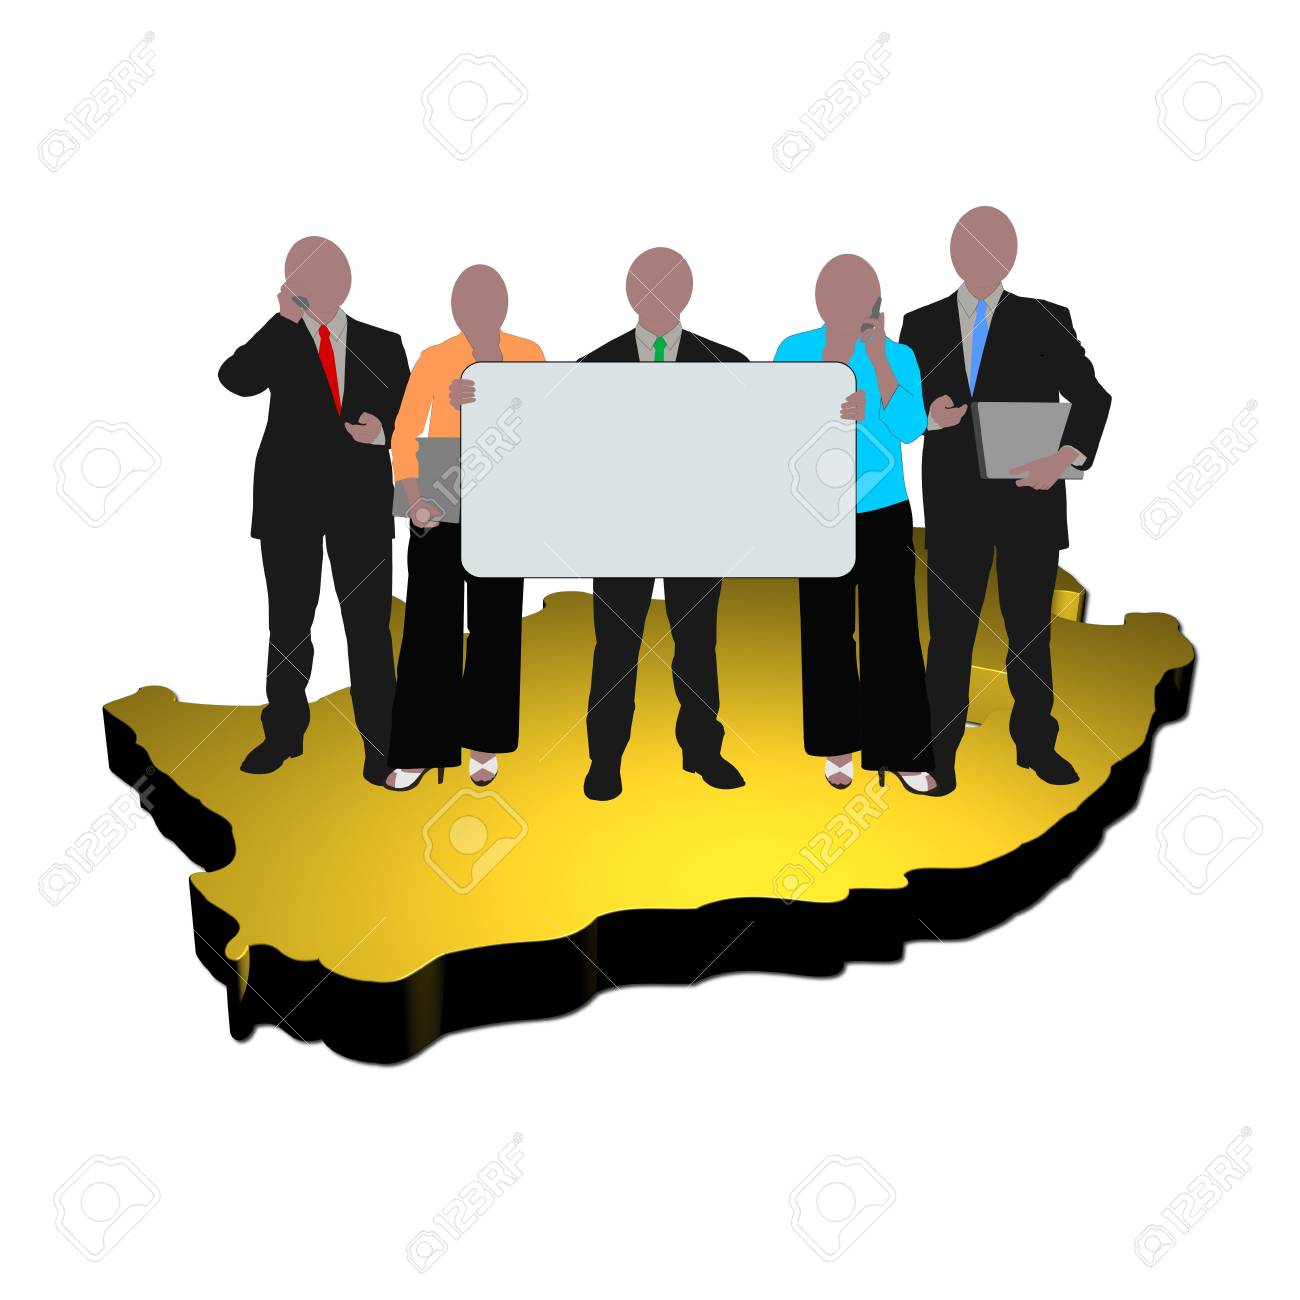 business team with sign on map of South Africa Stock Photo - 5307792